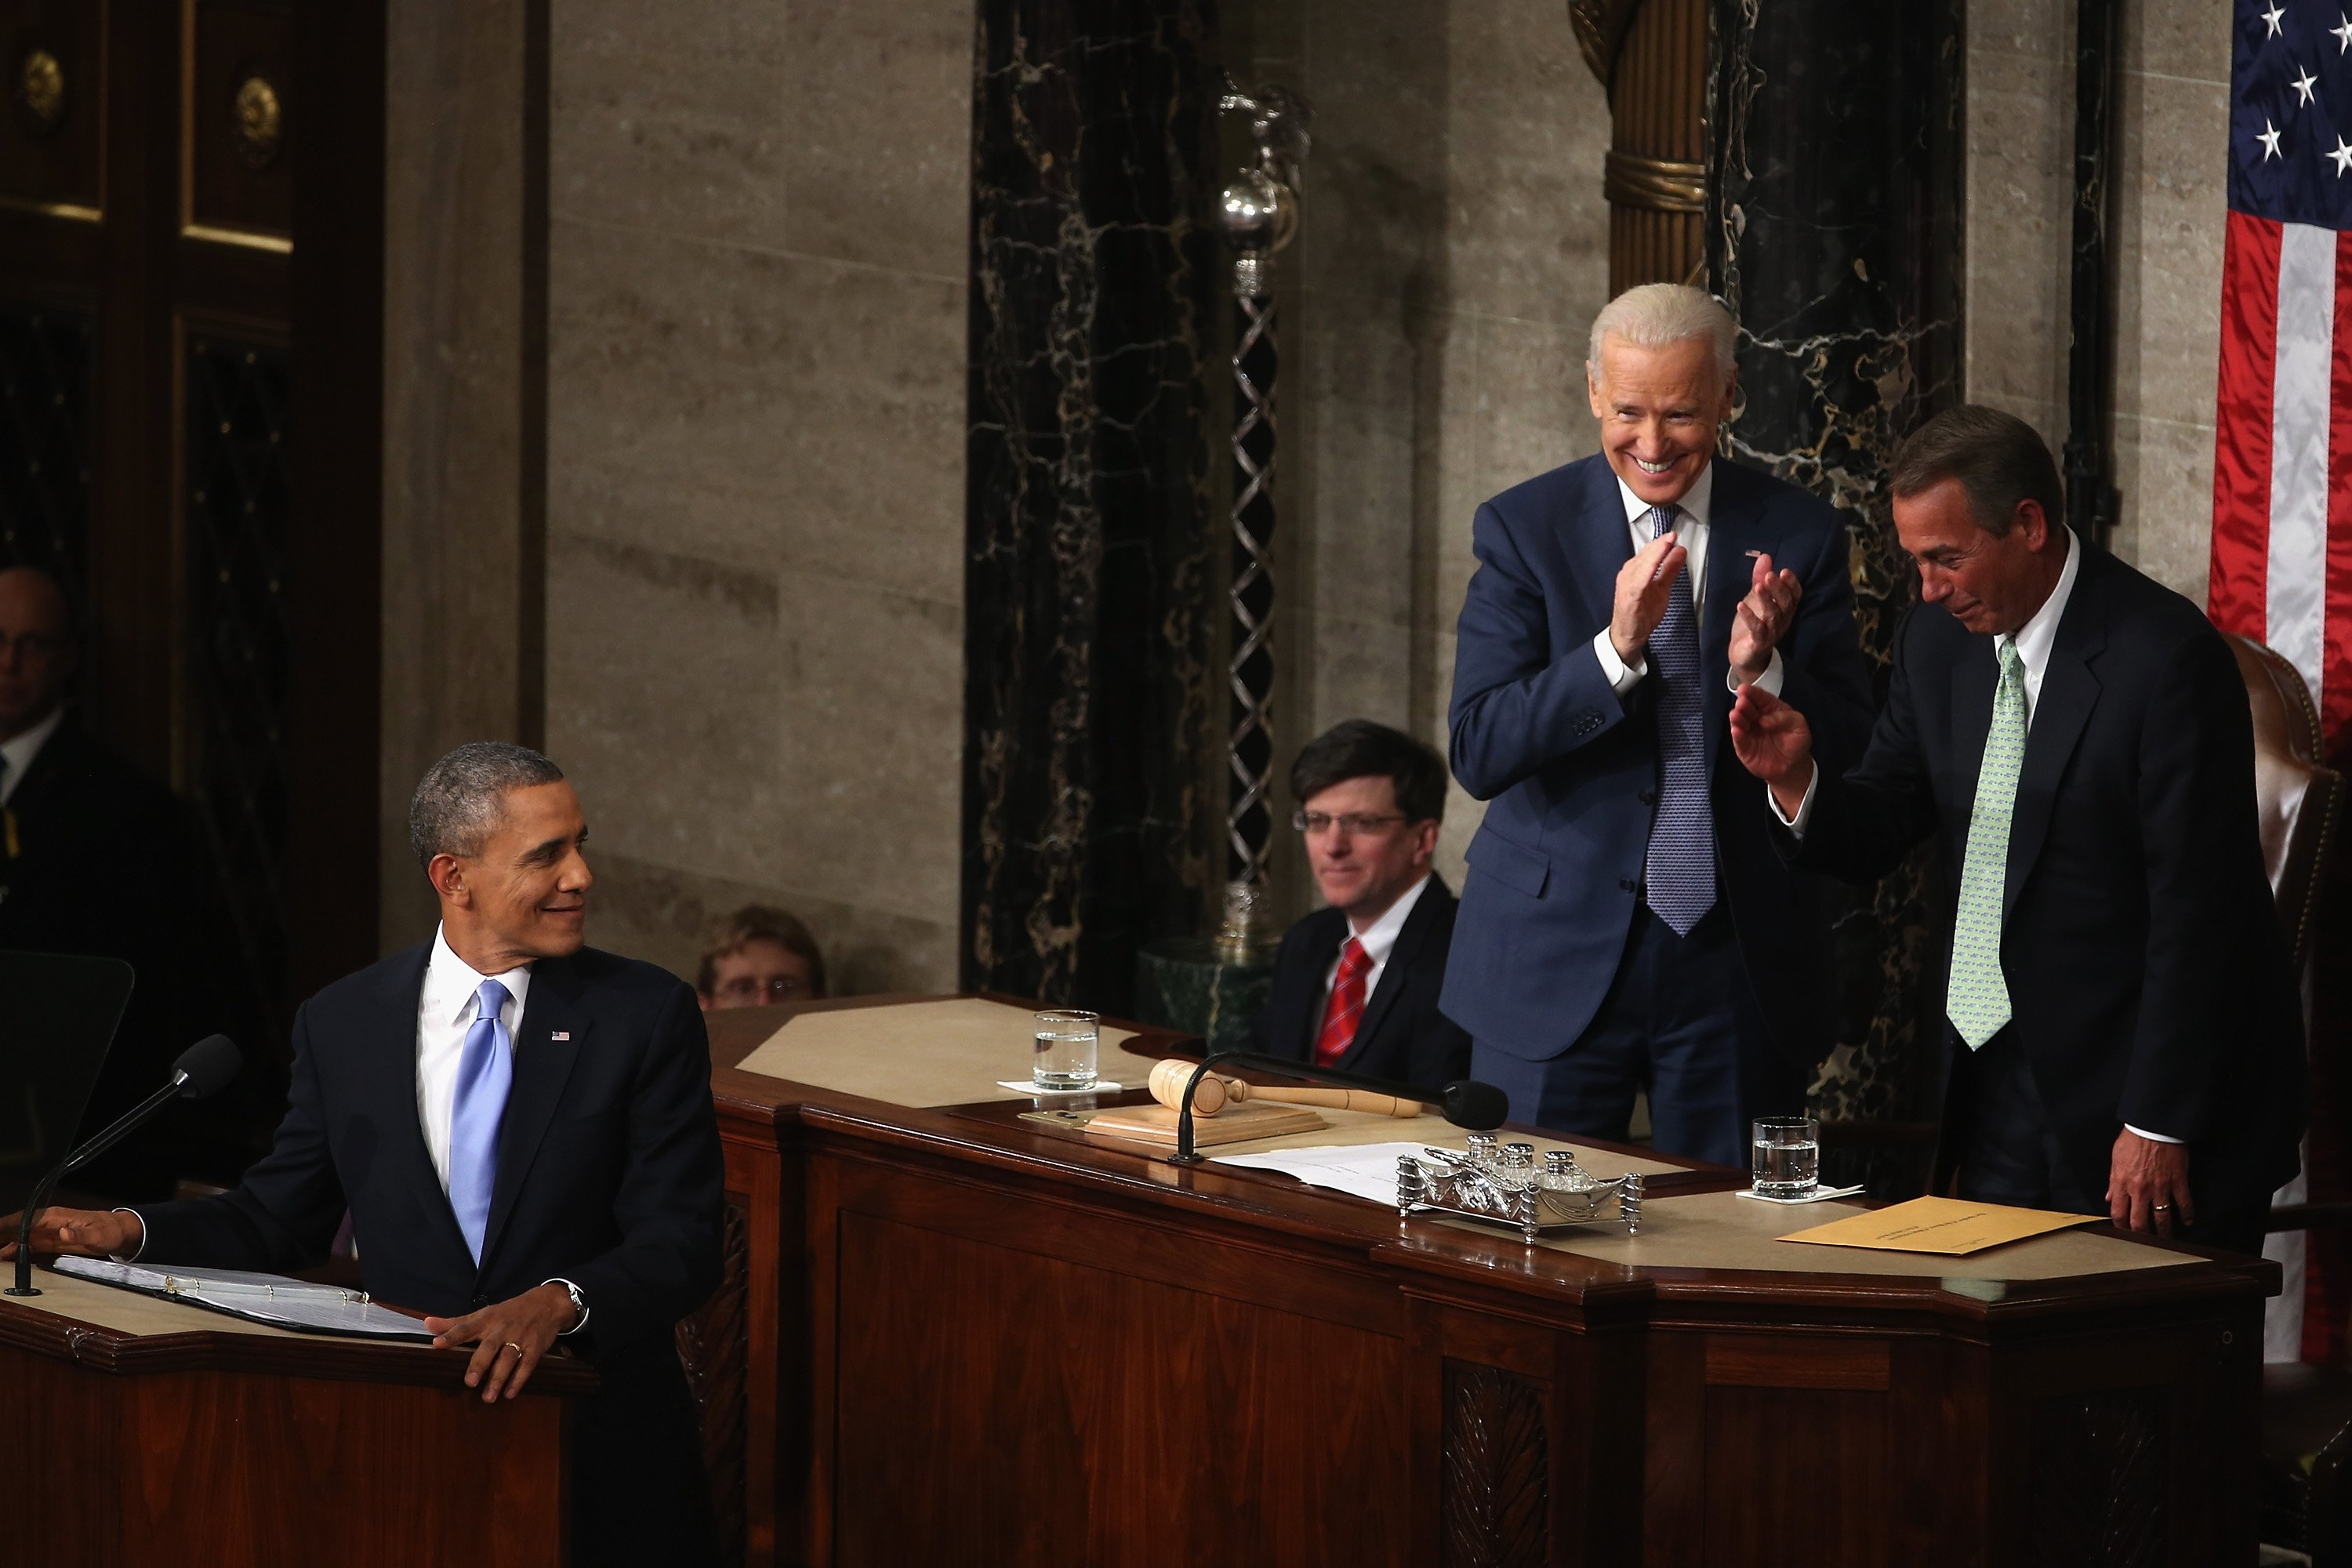 President Barack Obama turns to acknowledge House Speaker John Boehner after referencing his father in the opening of his address.